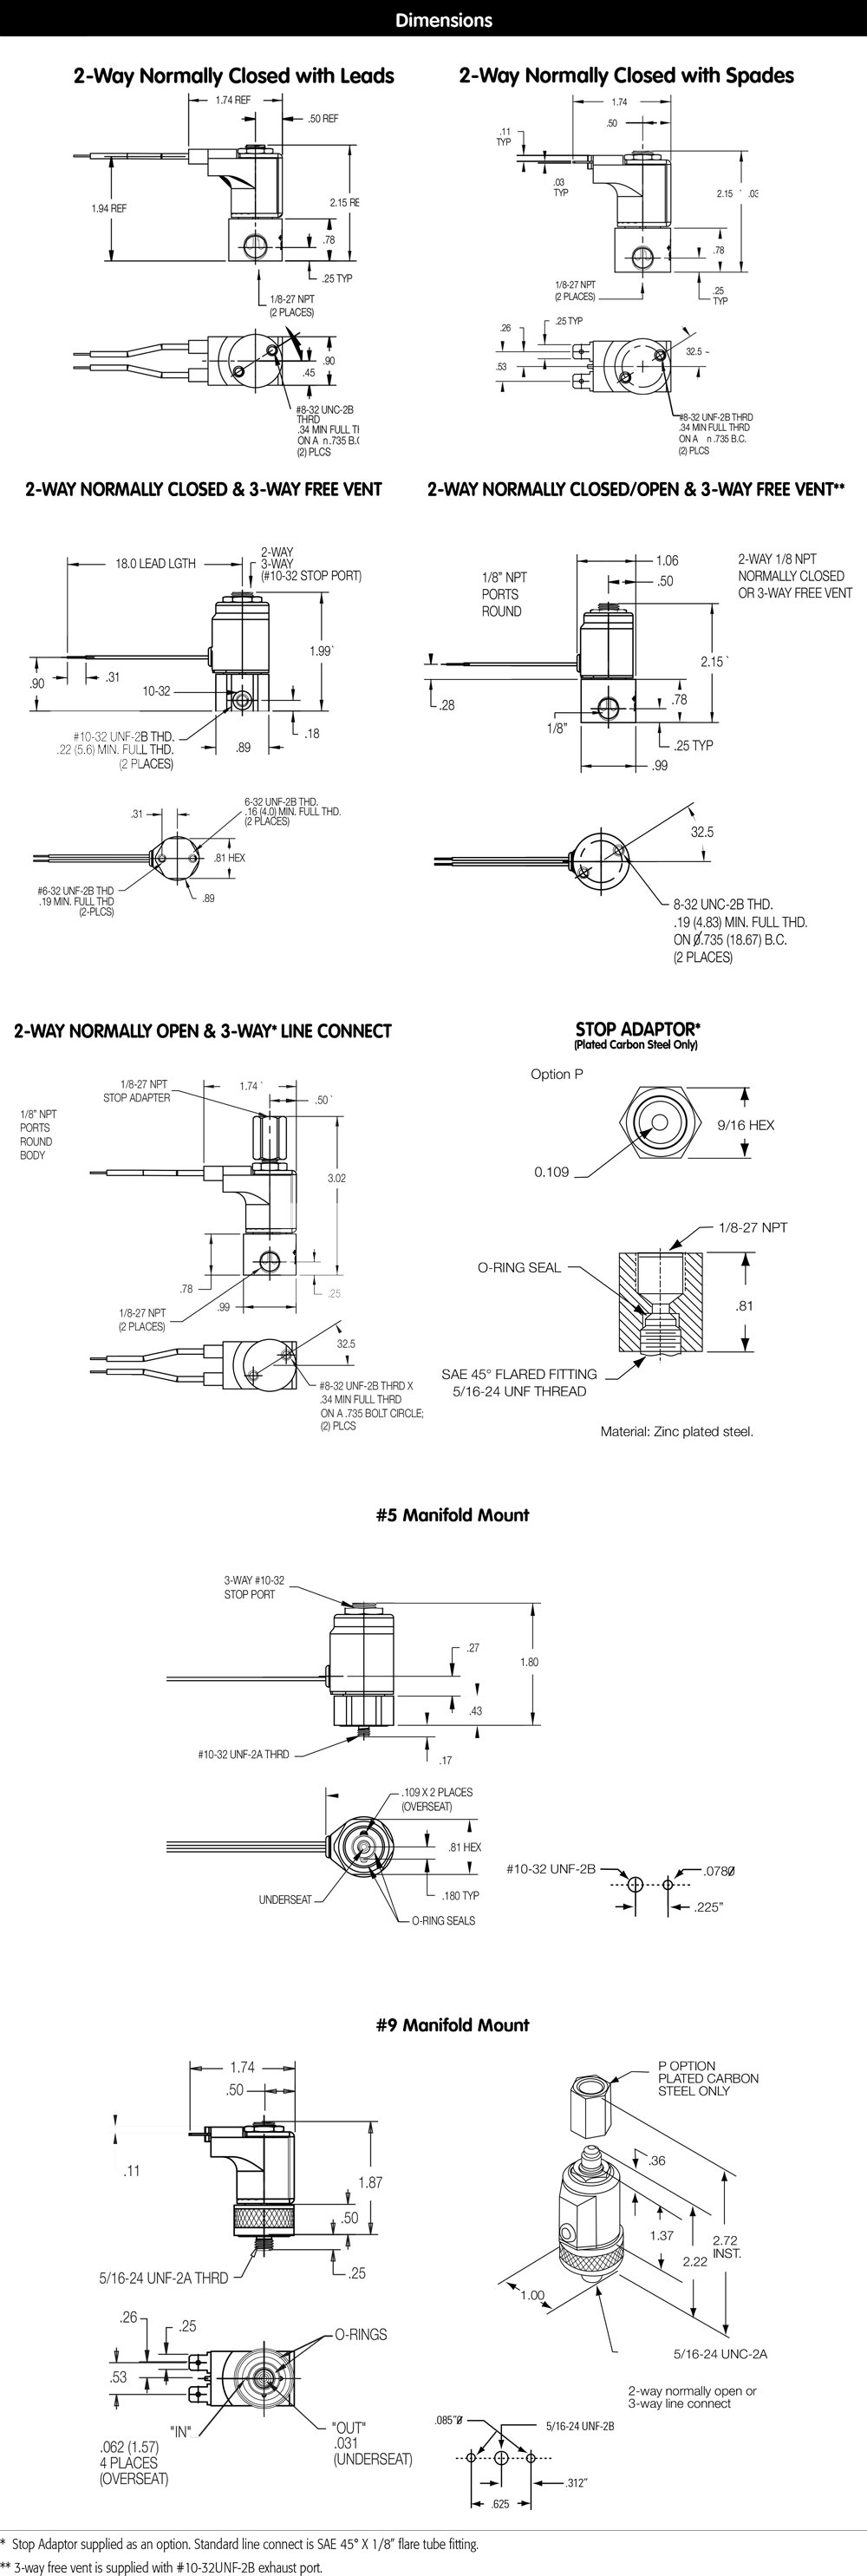 Wattmizer Low Power Series Solenoid Valves Solutions 3 Way Valve Wiring Diagram Overview Of Operations